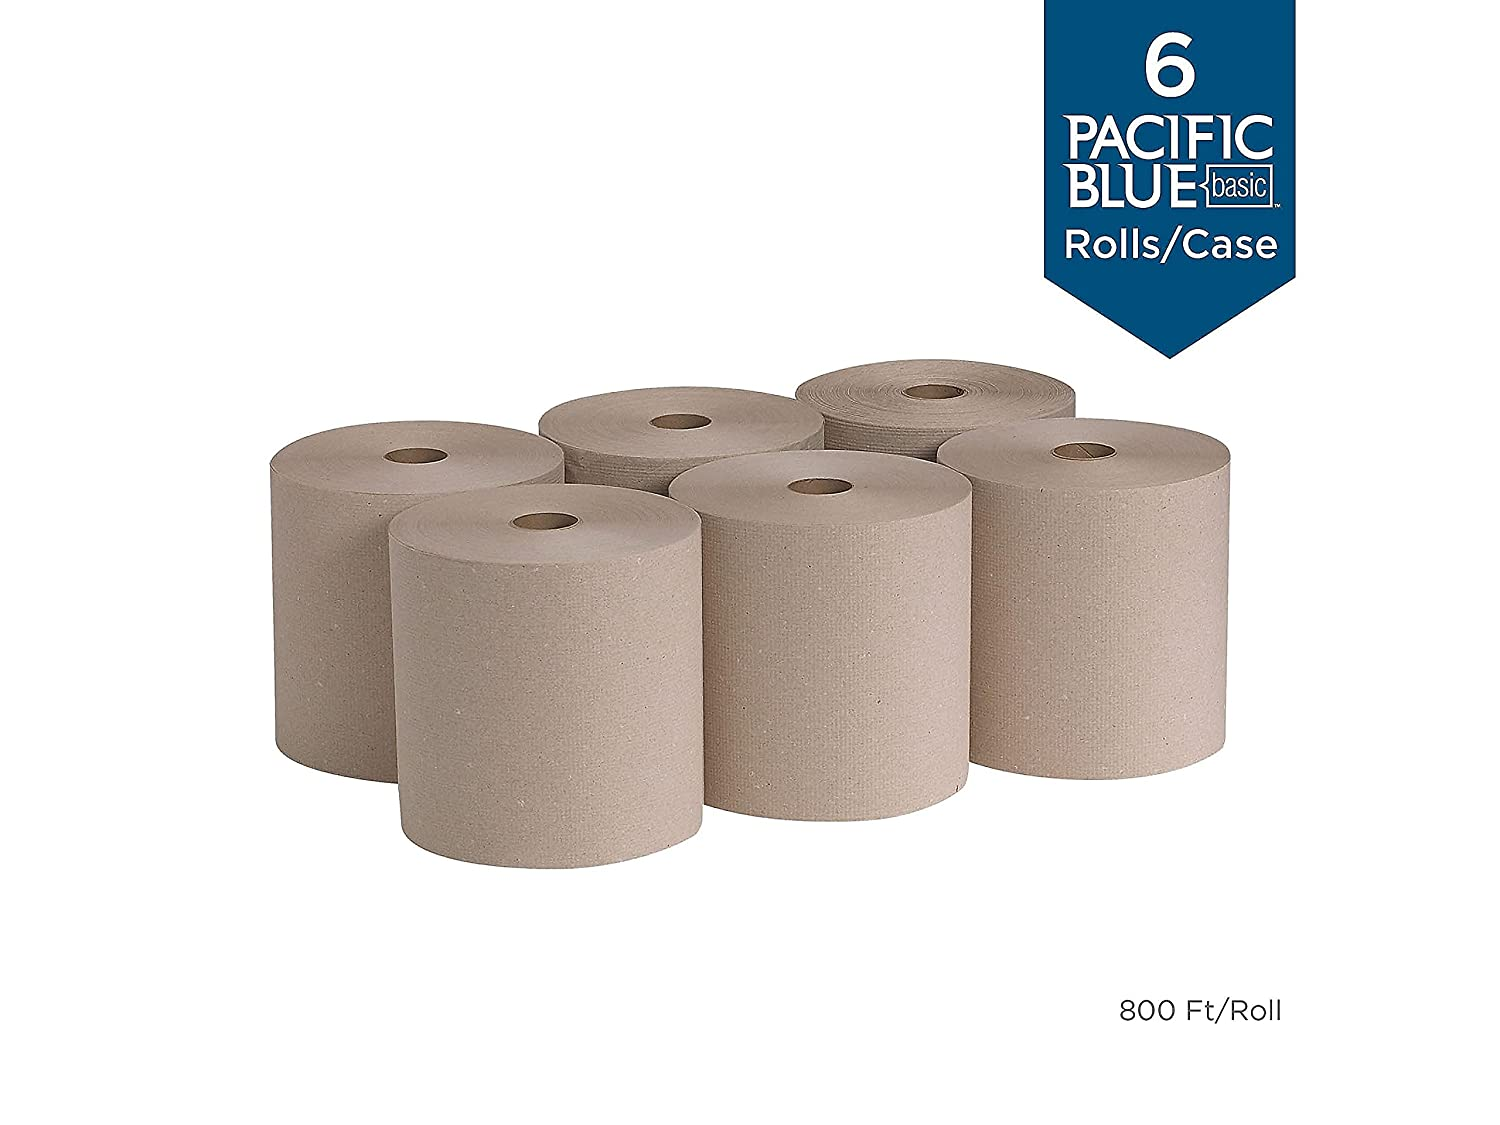 Brown *New* WH-Boc247 Paper Towel Rolls Pack of 5